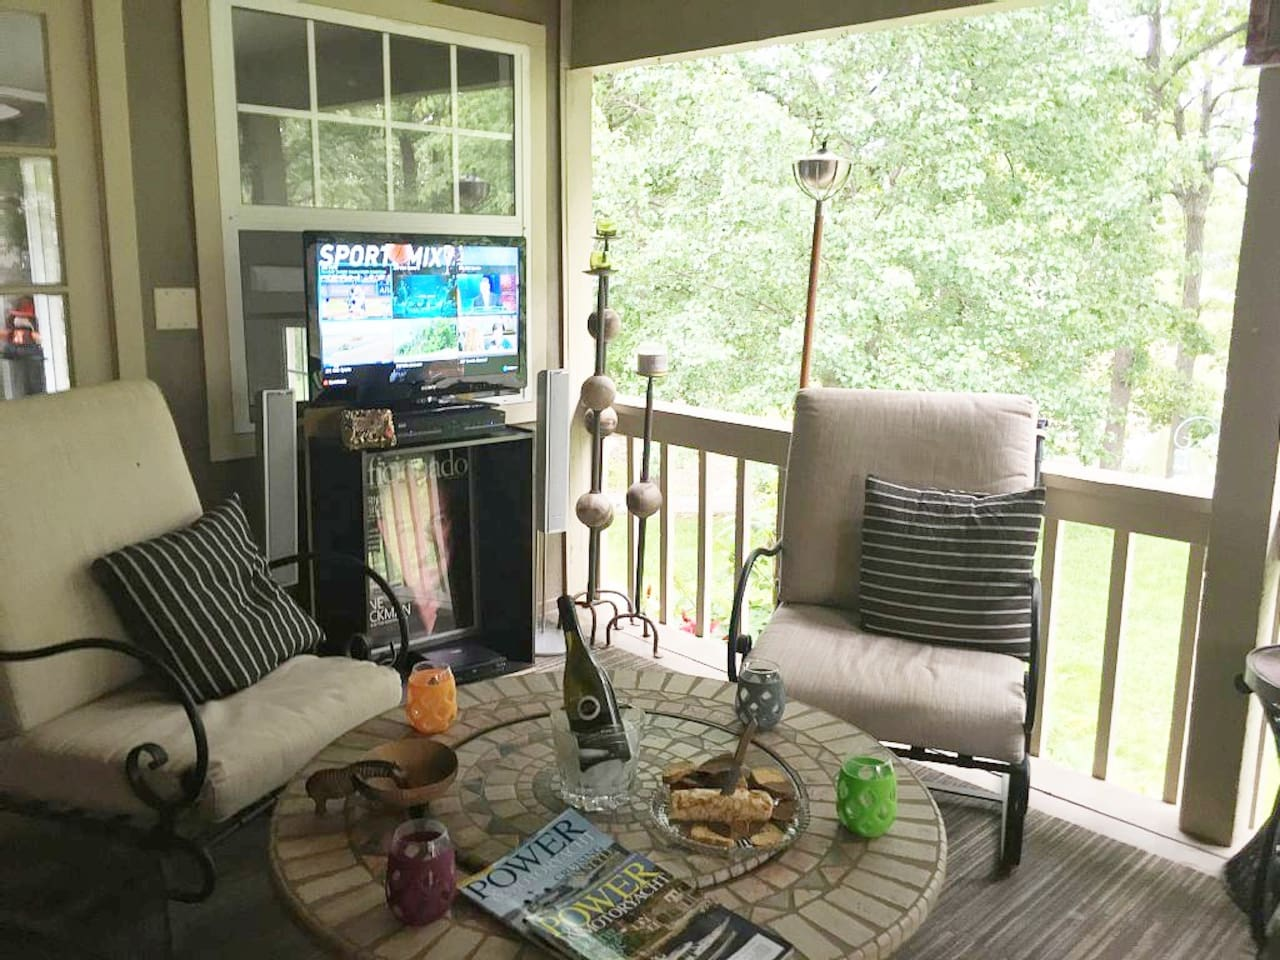 Popular covered deck offers lake view & large back yard. Walking distance to lake & marina. Deck Features include   Direct TV, Home Theater Surround Sound. Luxury Deck furniture, fire pit,  2 ceiling fans, torches, & abundant hummingbirds & wildlife.